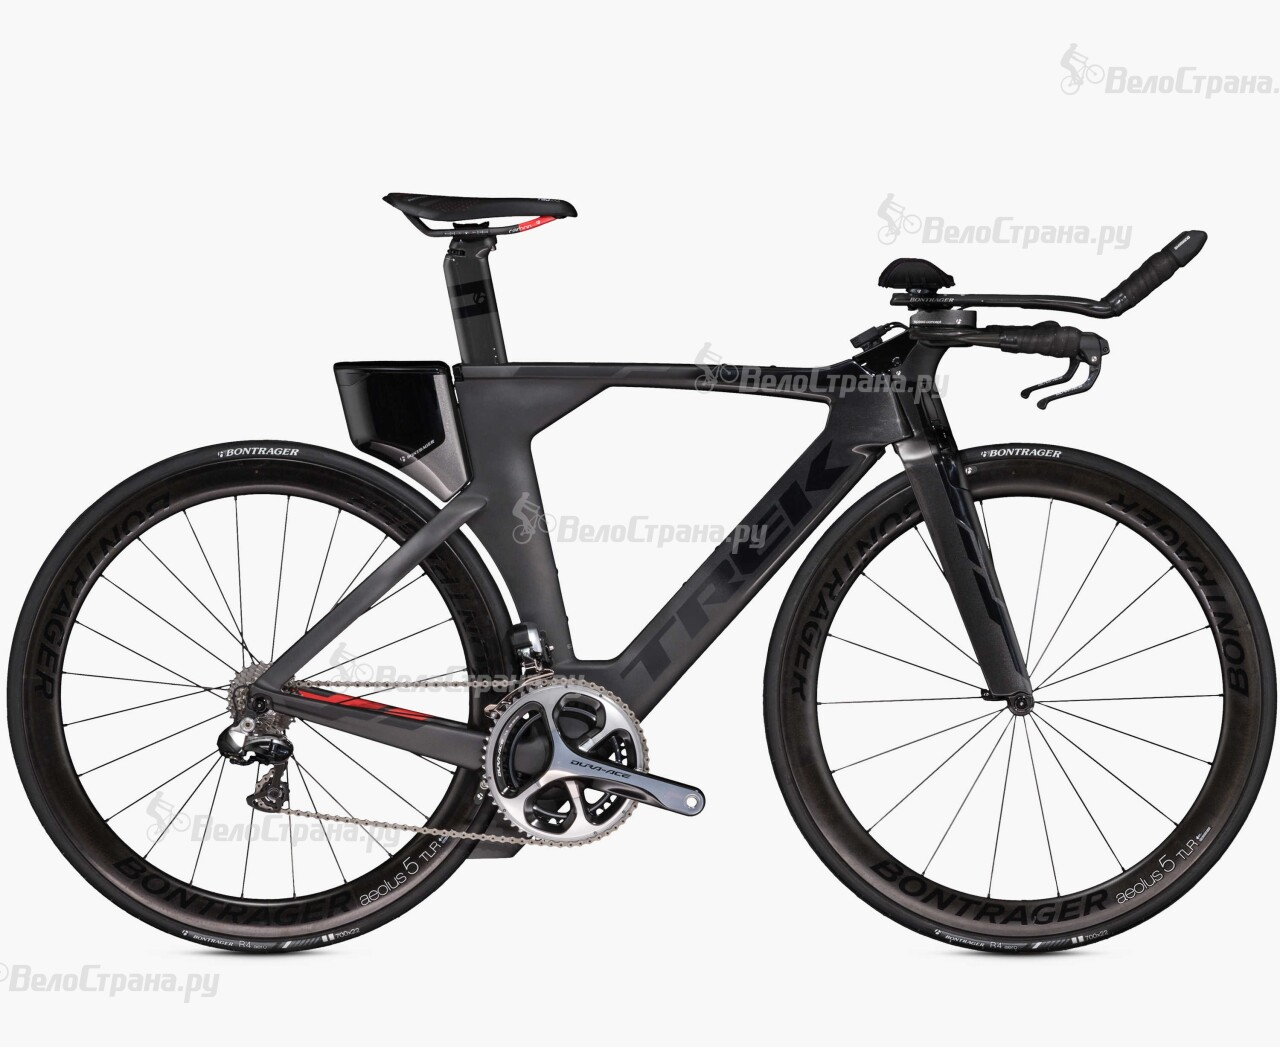 Велосипед Trek Speed Concept 9.9 (2016) concept driven 2sc0435t 2sc0435t2a0 17 new stock